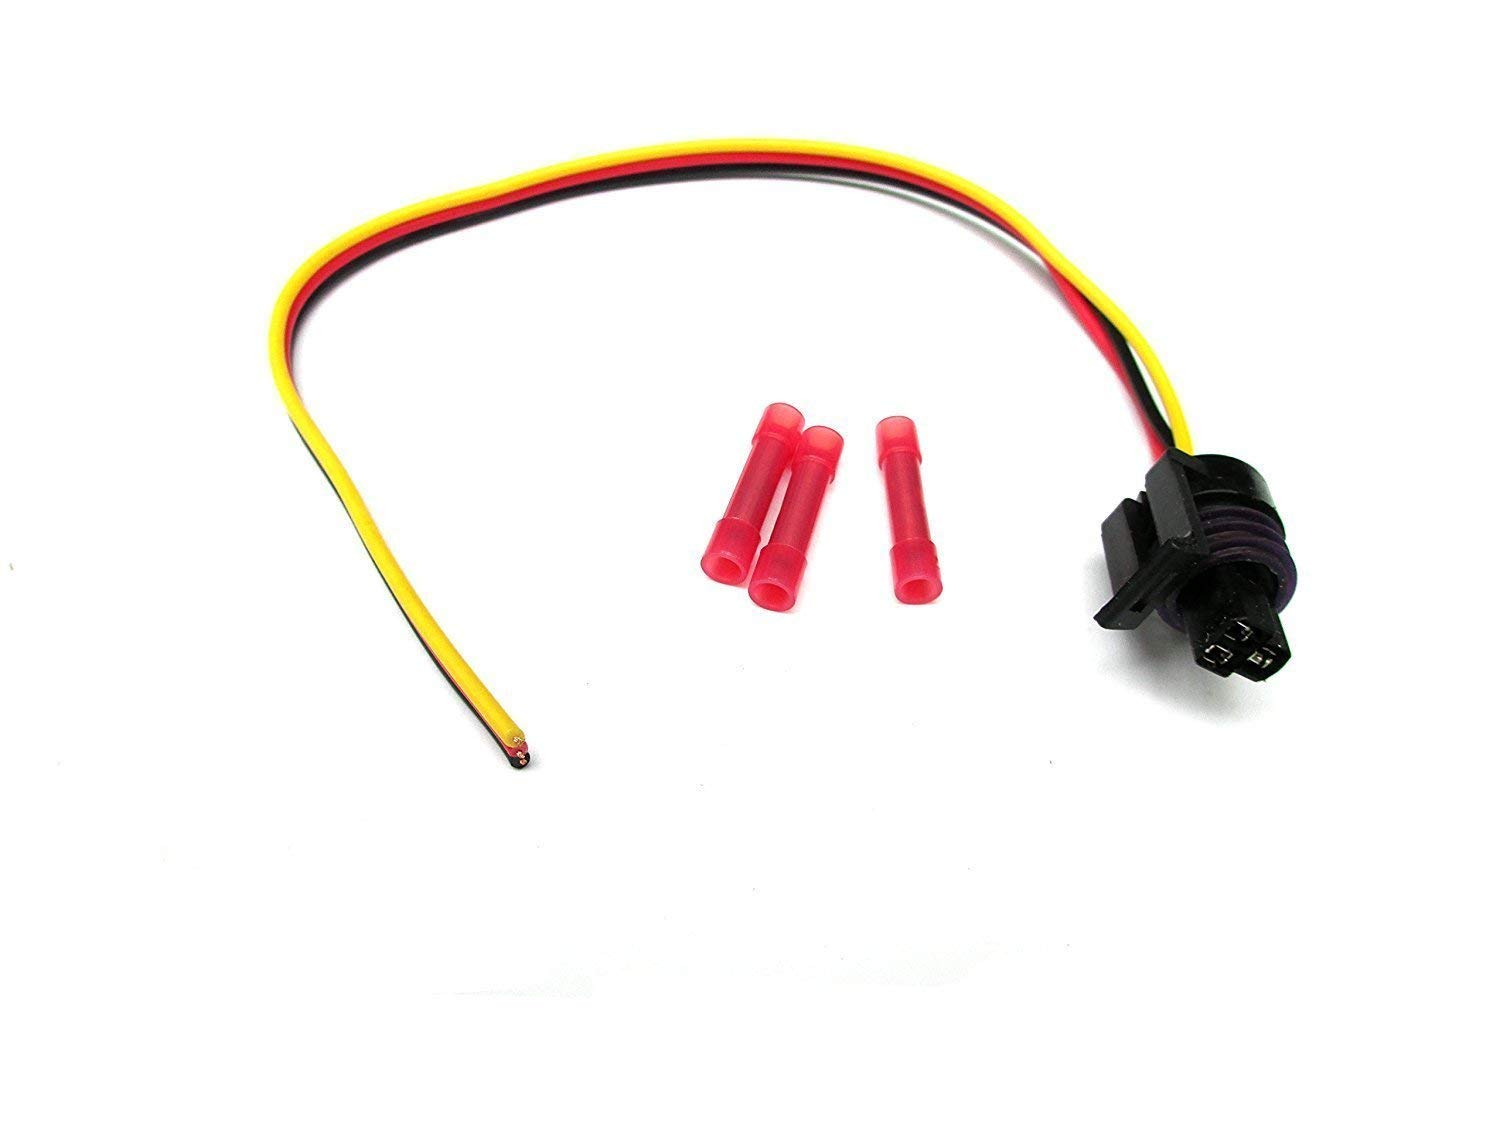 Fuel Injection Pressure Sensor ICP w//Pigtail For Ford 7.3L Powerstroke w//Pigtail Harness F250 F350 F450 Powerstroke ICP102 F4TZ-9F838-A F6TZ-9F838-A 1807329CP2 5S2062 Carb Omar